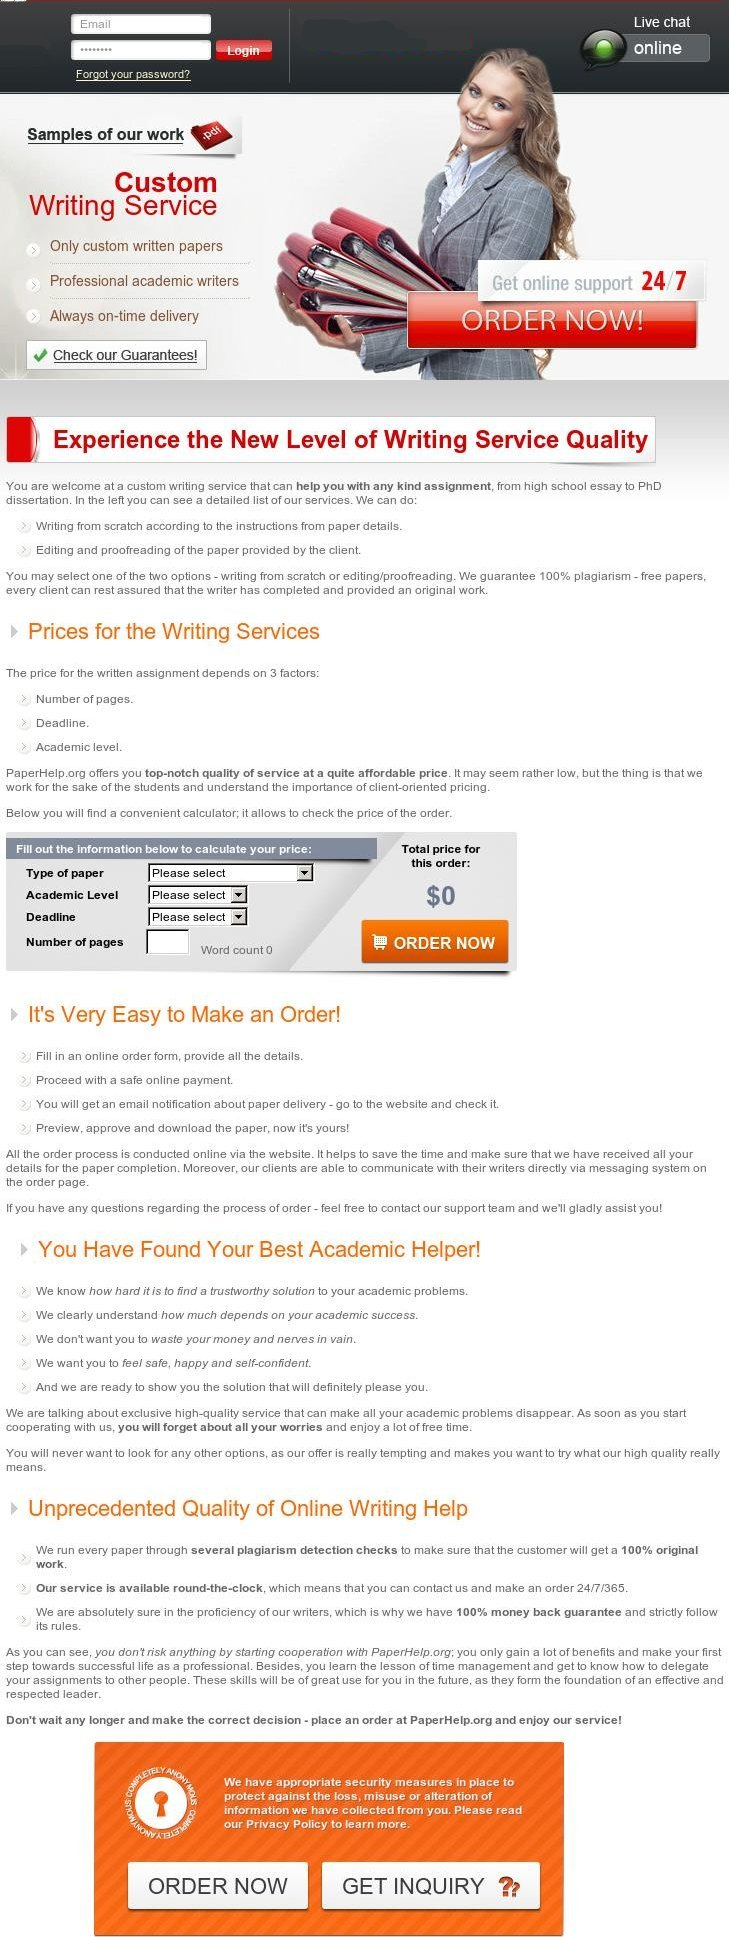 popular mba essay writing service gb writing mba essay services edmonton mba admissions essay writing service mba essays services paris mba admission